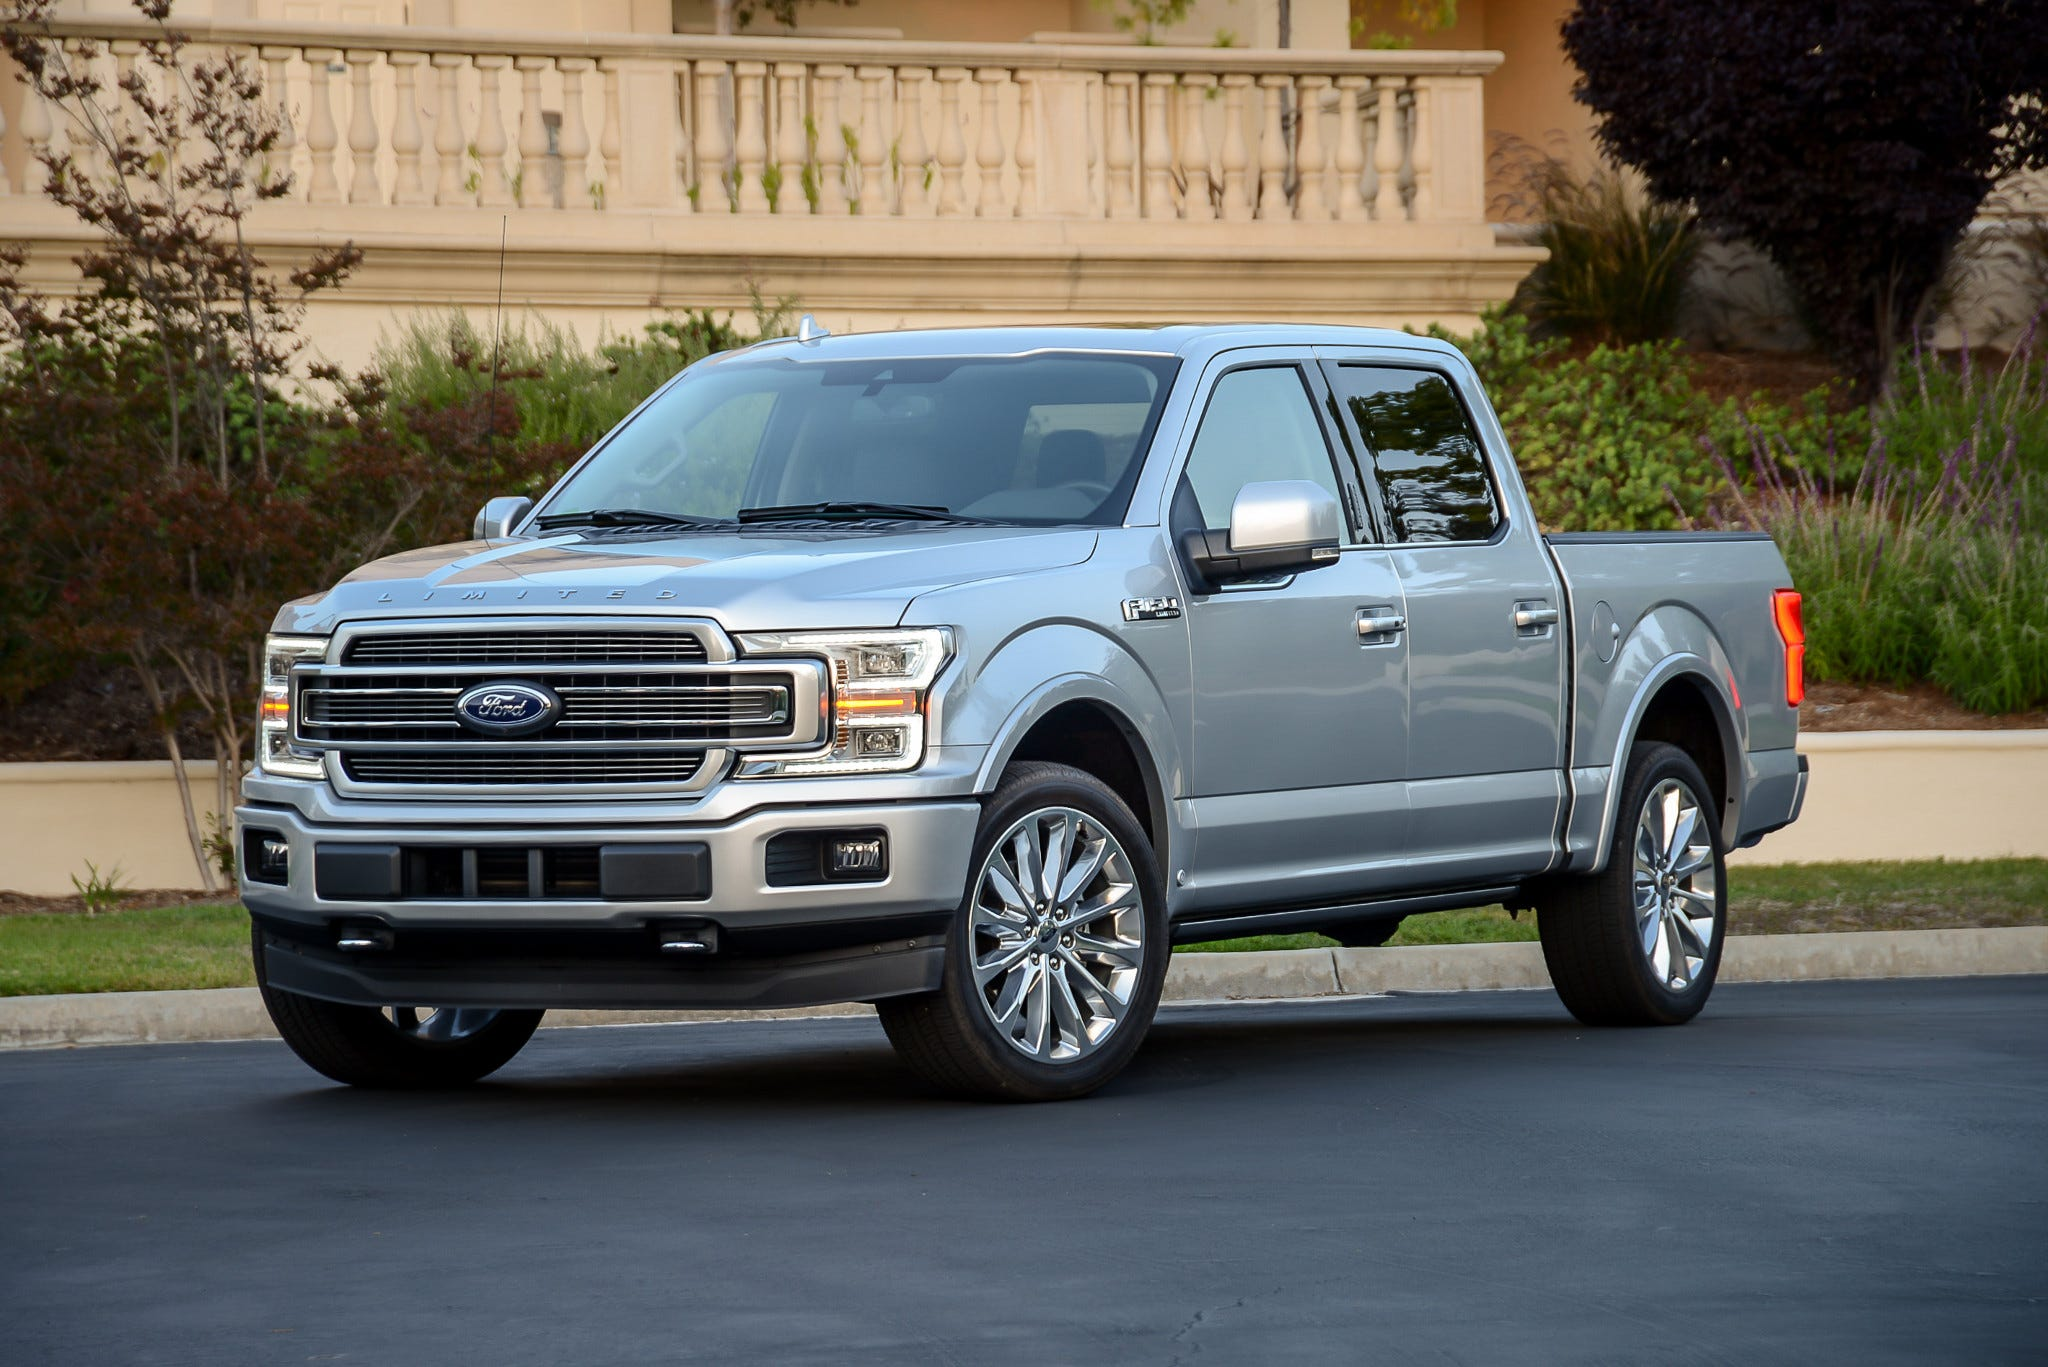 2019 20 Ford F 150 Recalled For Possible Steering Fire Issue